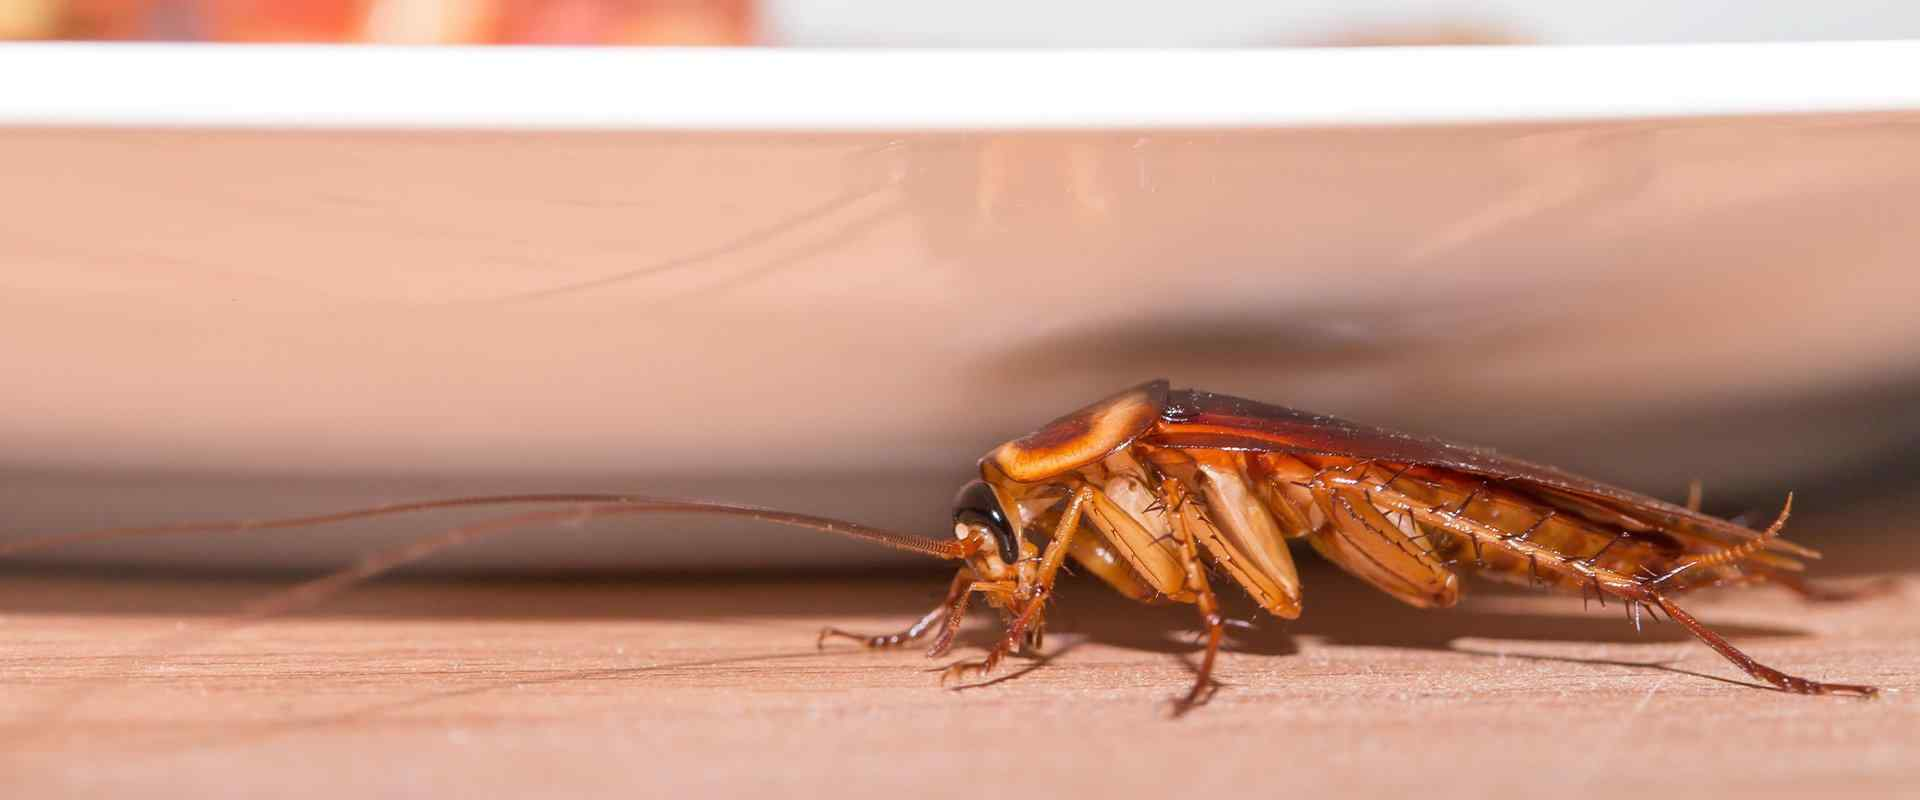 cockroach on kitchen counter